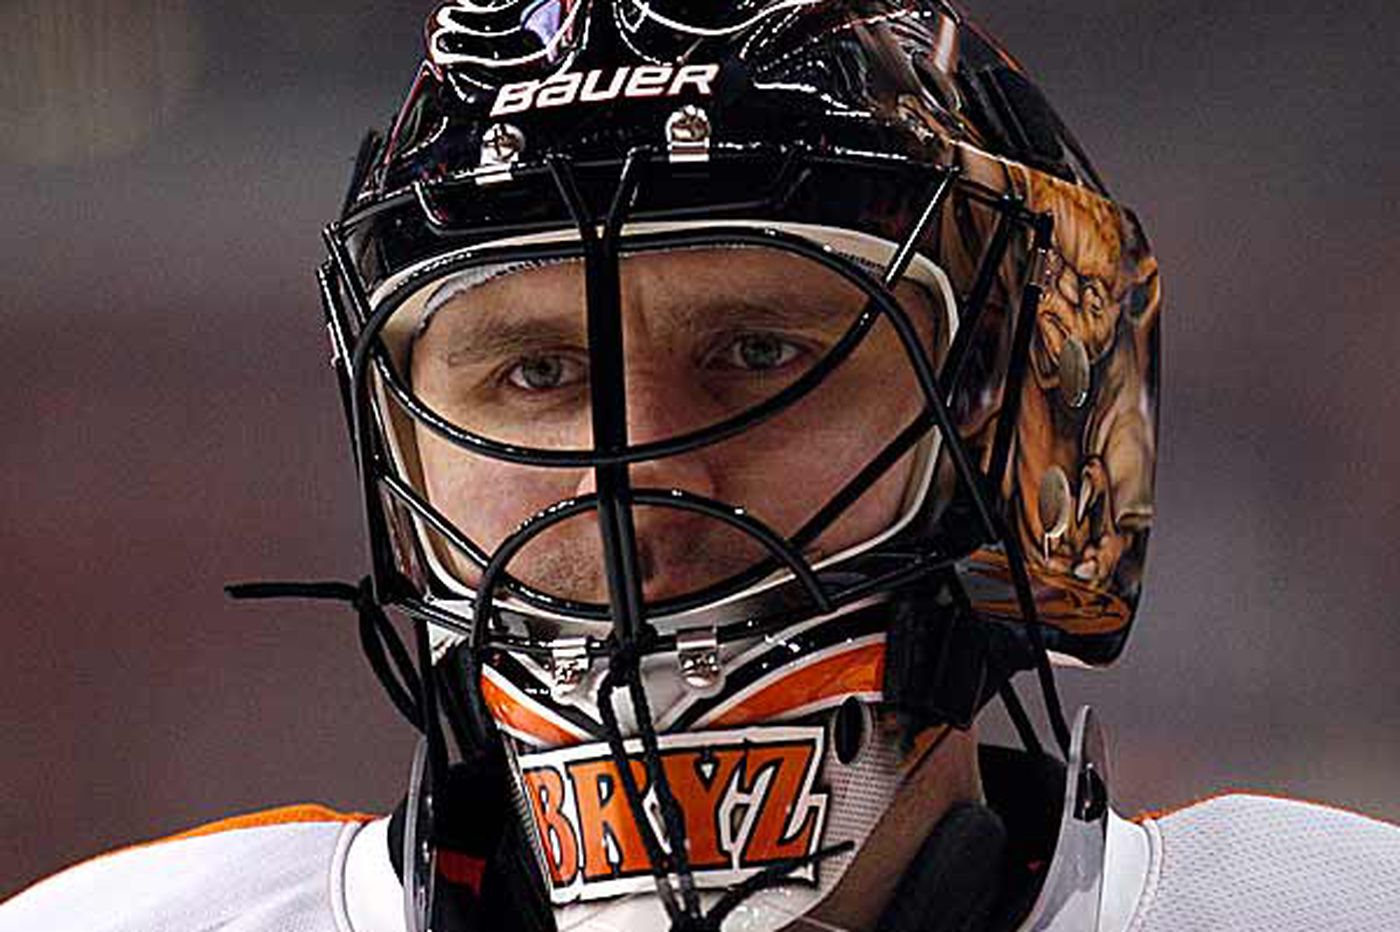 Bryzgalov causes a stir in Russian interview